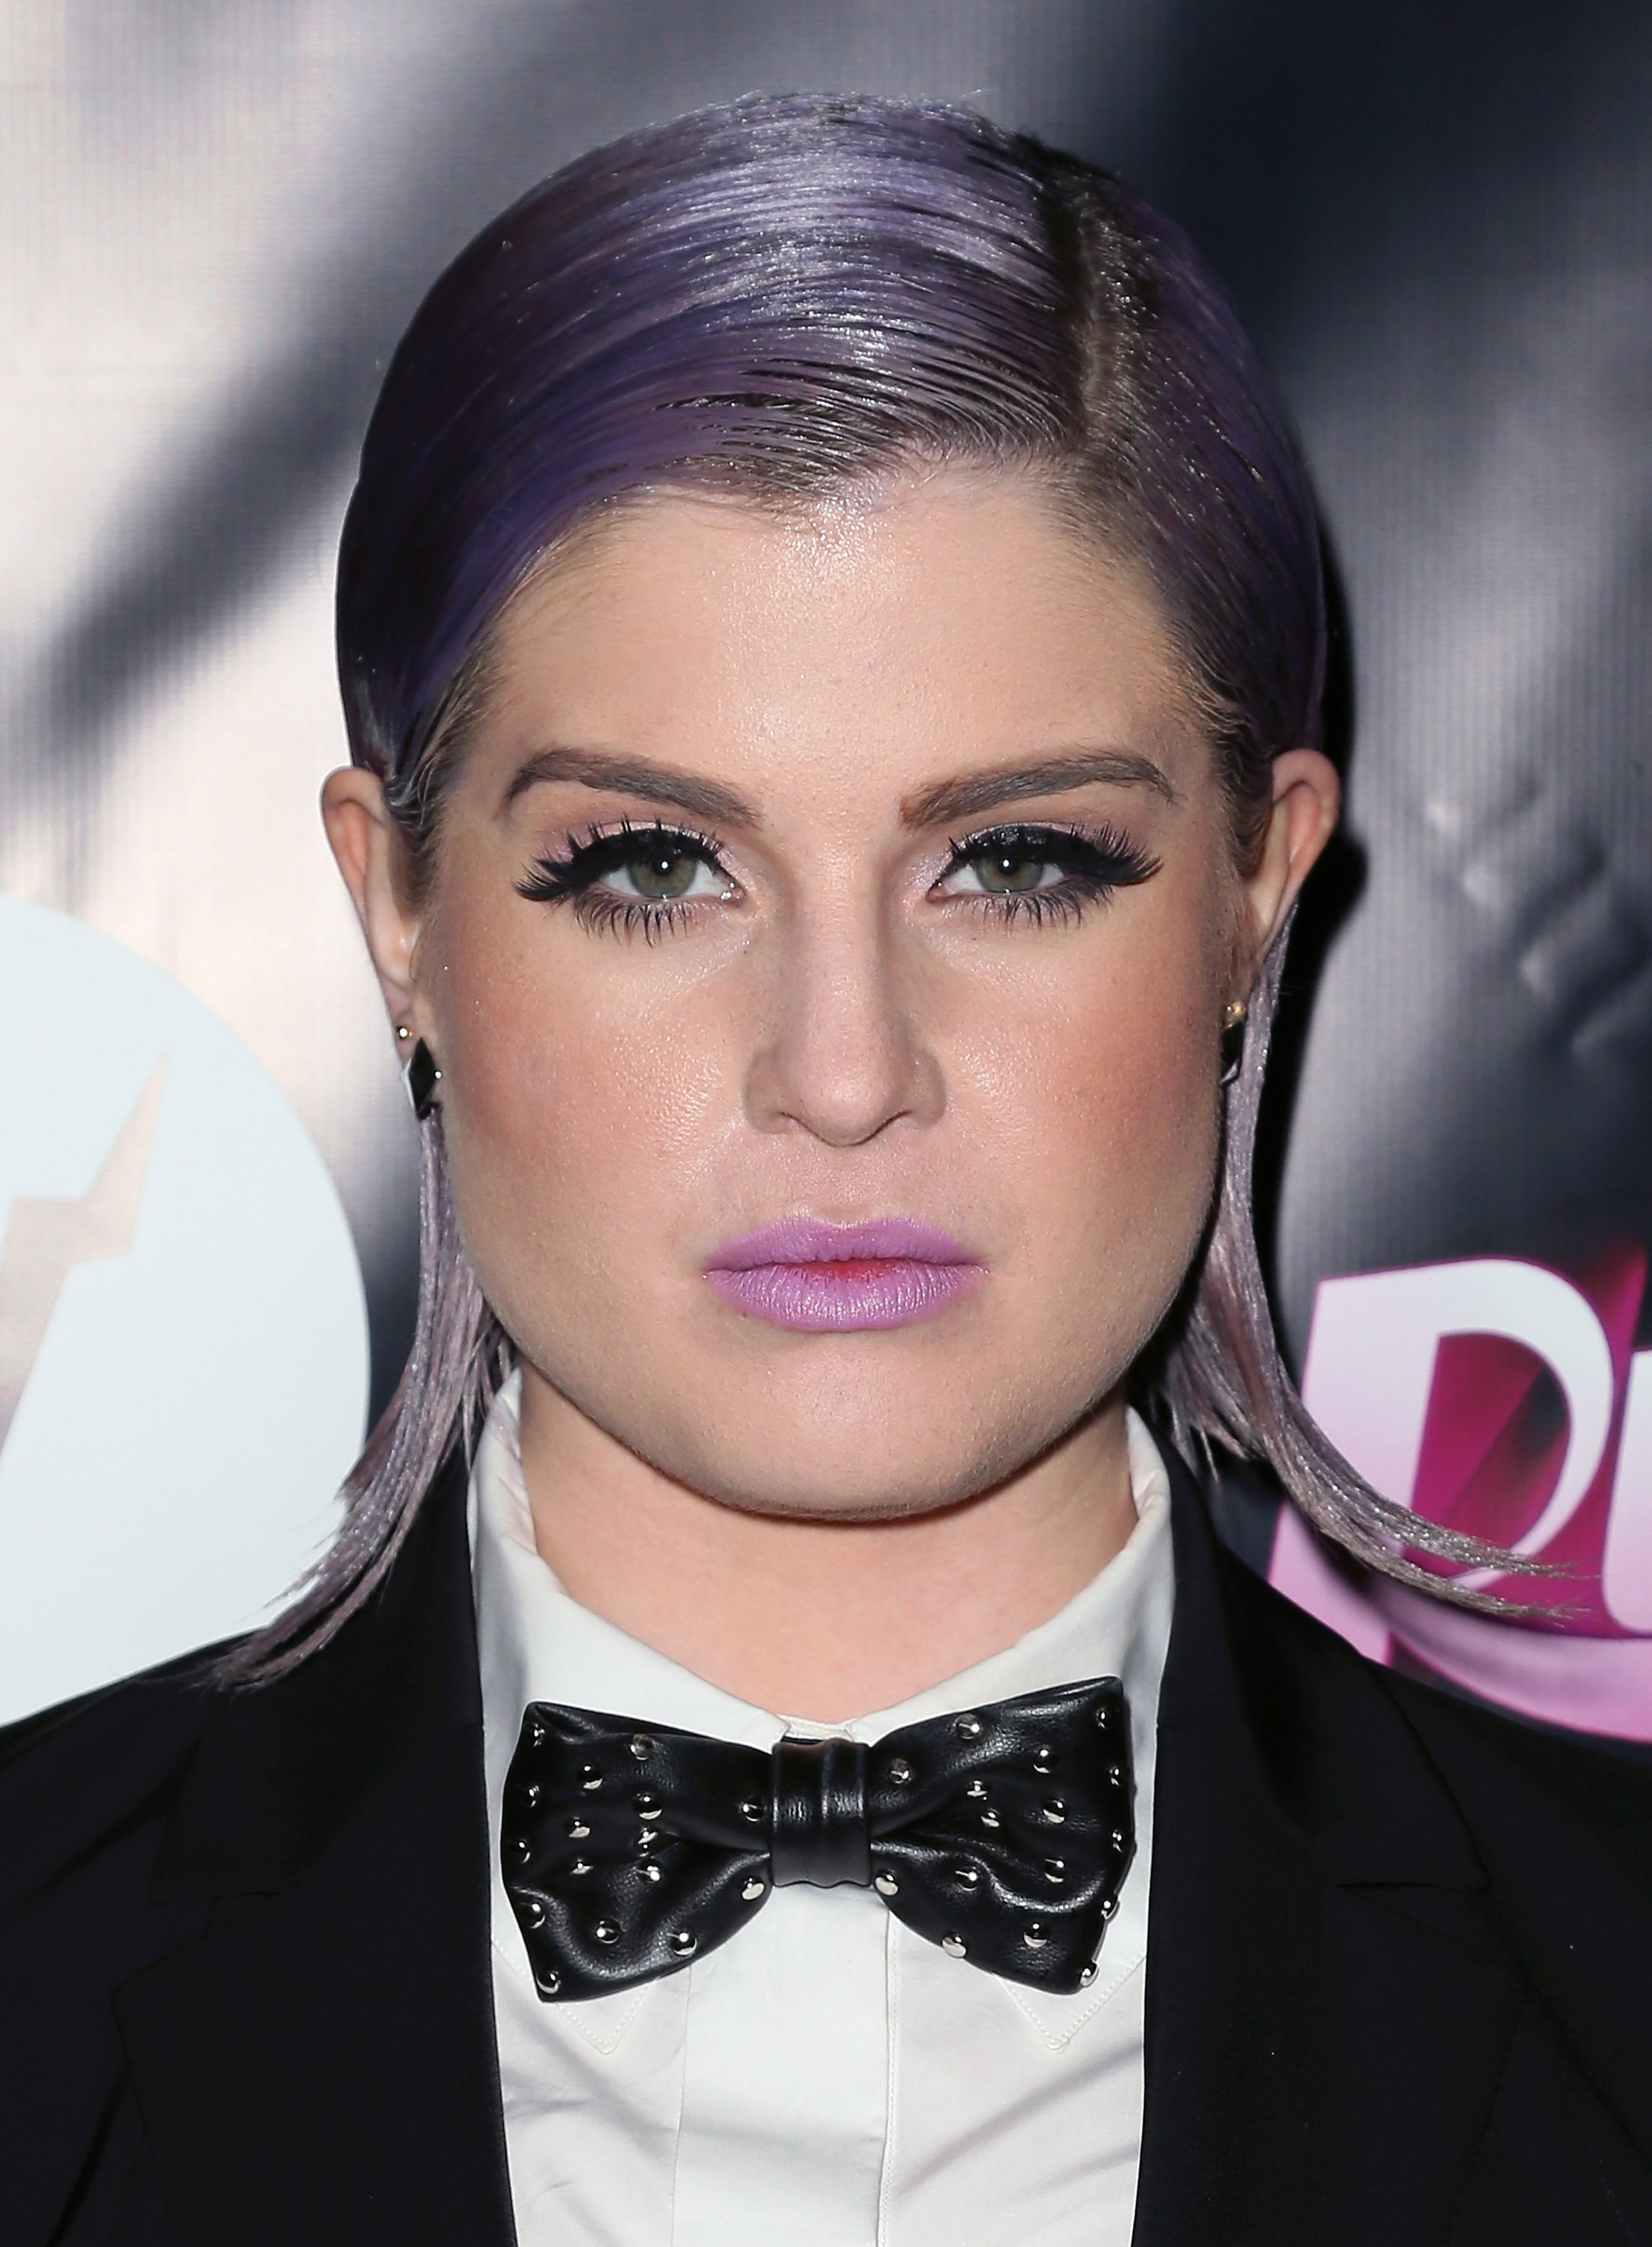 """Kelly Osbourne attends the """"RuPaul's Drag Race"""" Season 6 premiere party at The Roosevelt Hotel on February 17, 2014 in Hollywood, California 